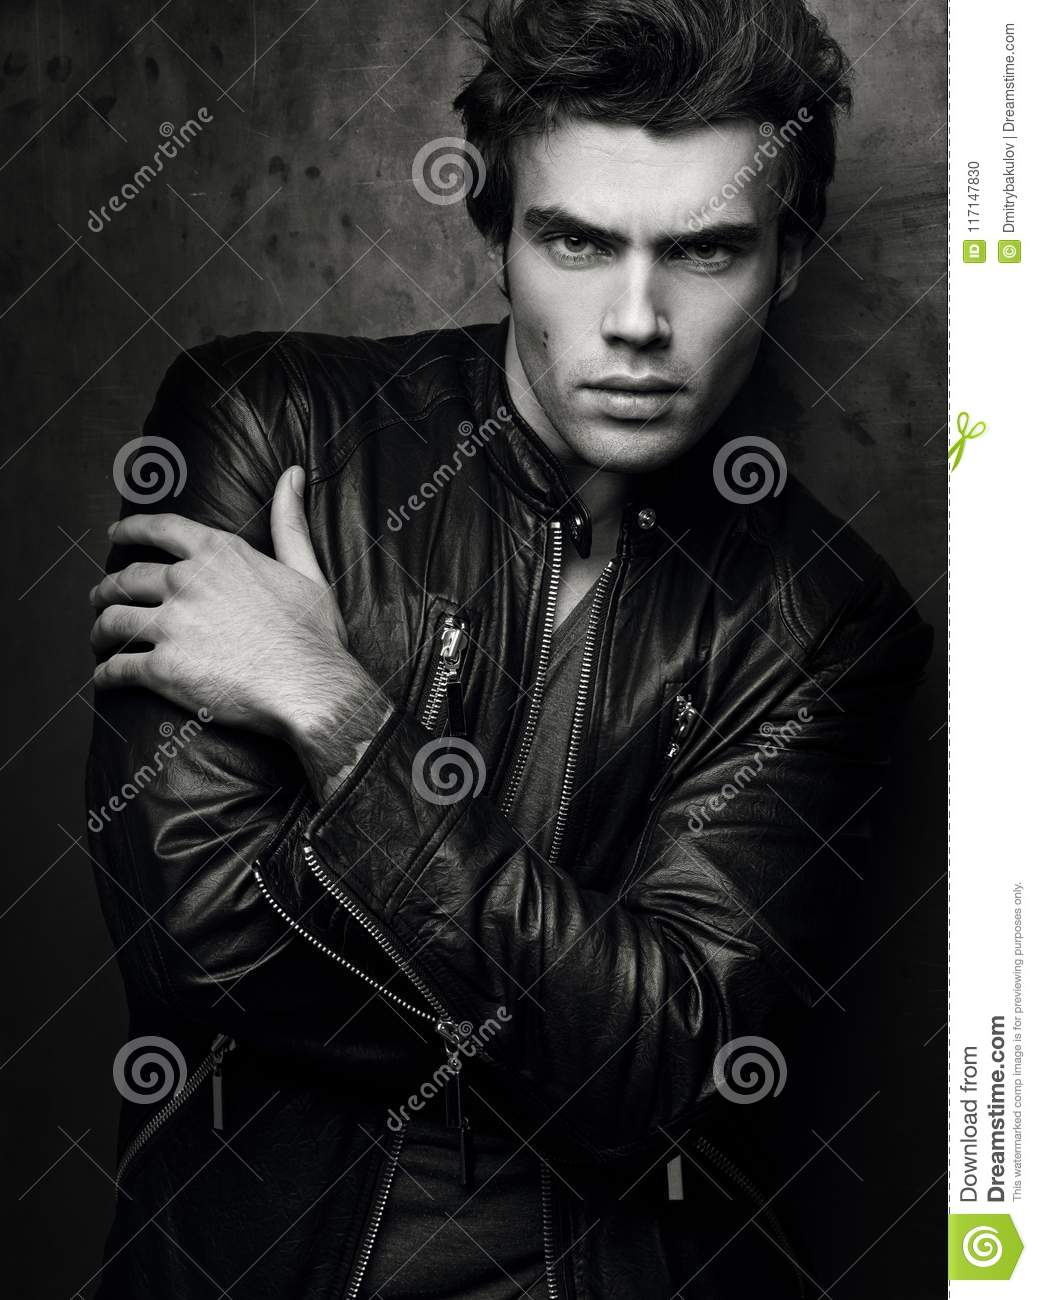 Fashion Portrait Of Handsome Young Man In A Black Leather Jacket